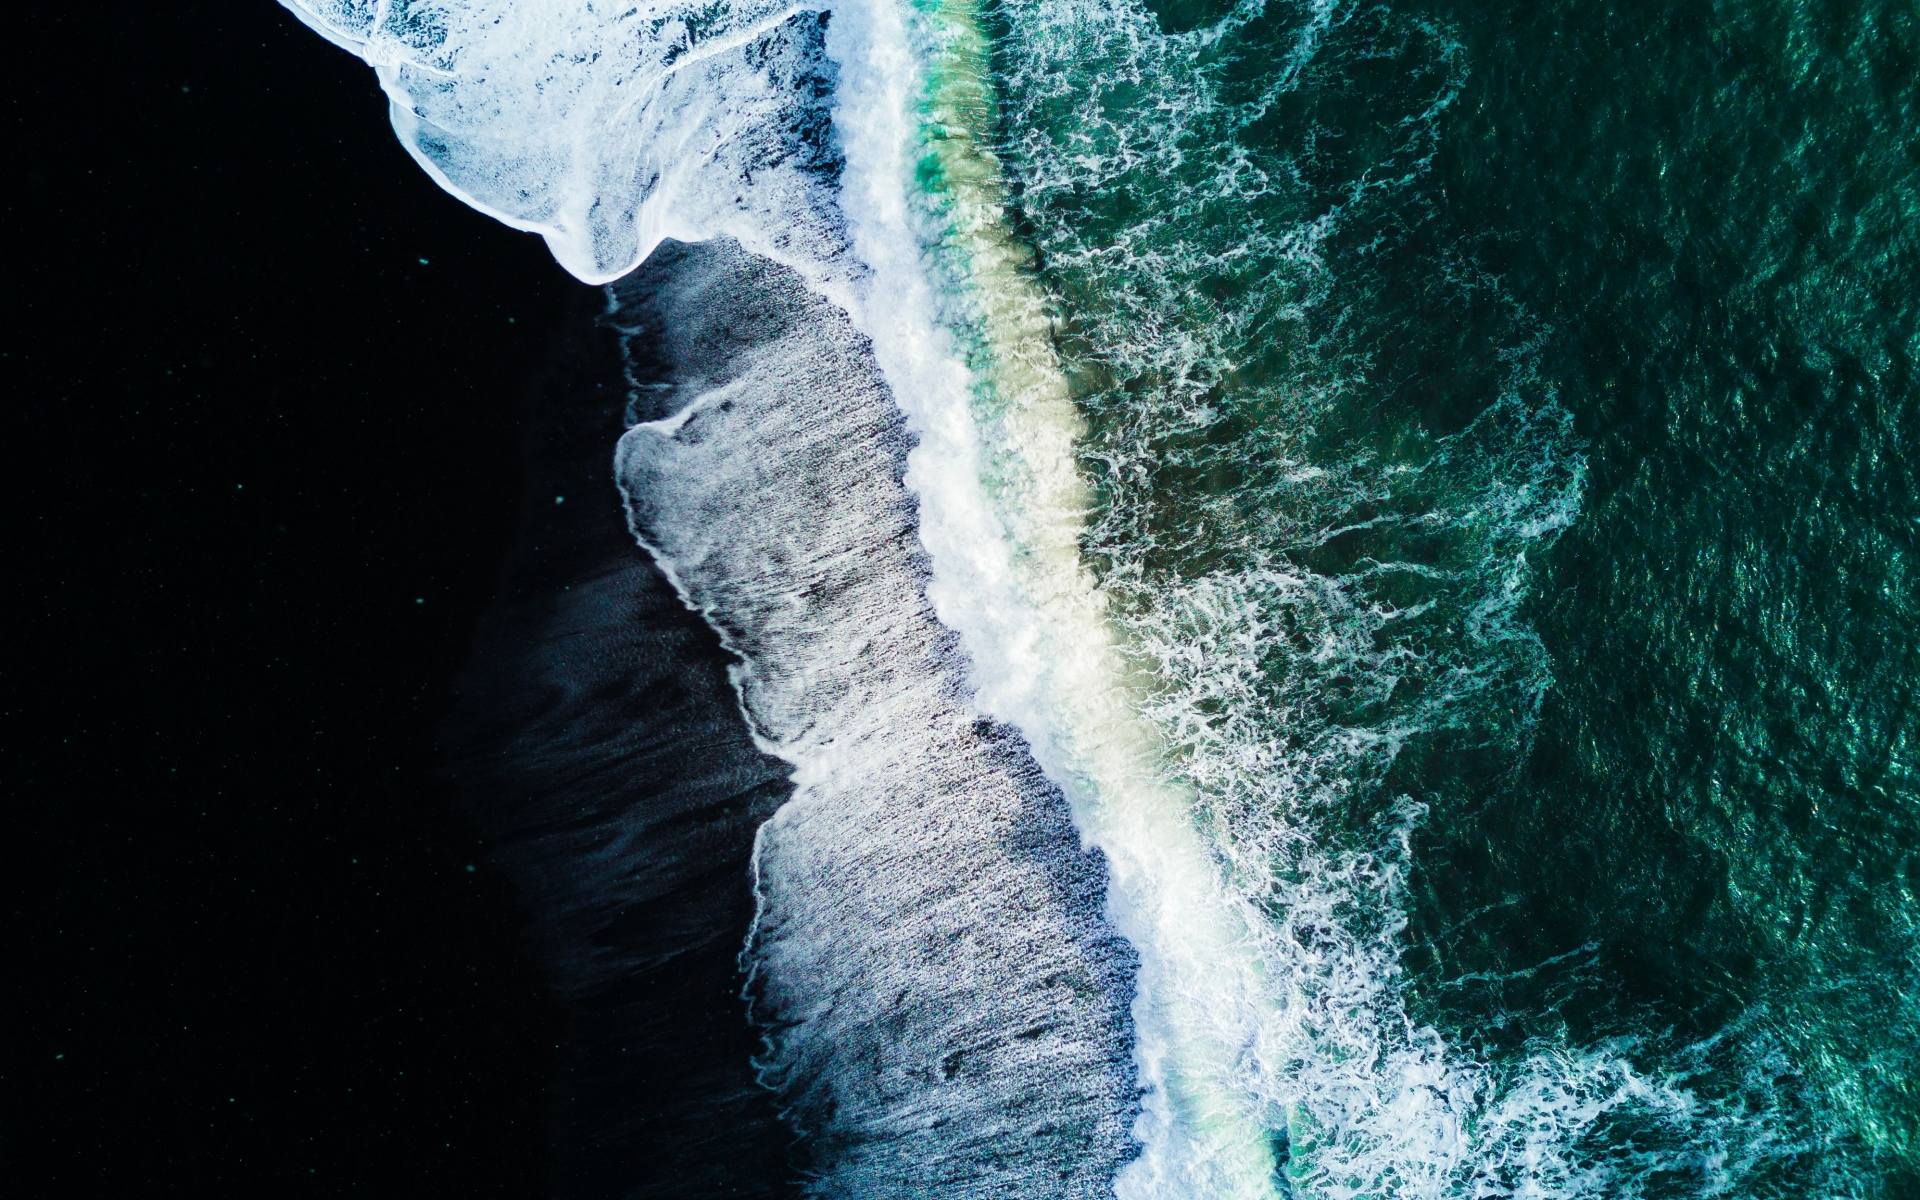 Reynisfjara Black Sand Beach 4k Wallpaper Waves Aerial View Ocean Iceland Nature 1332